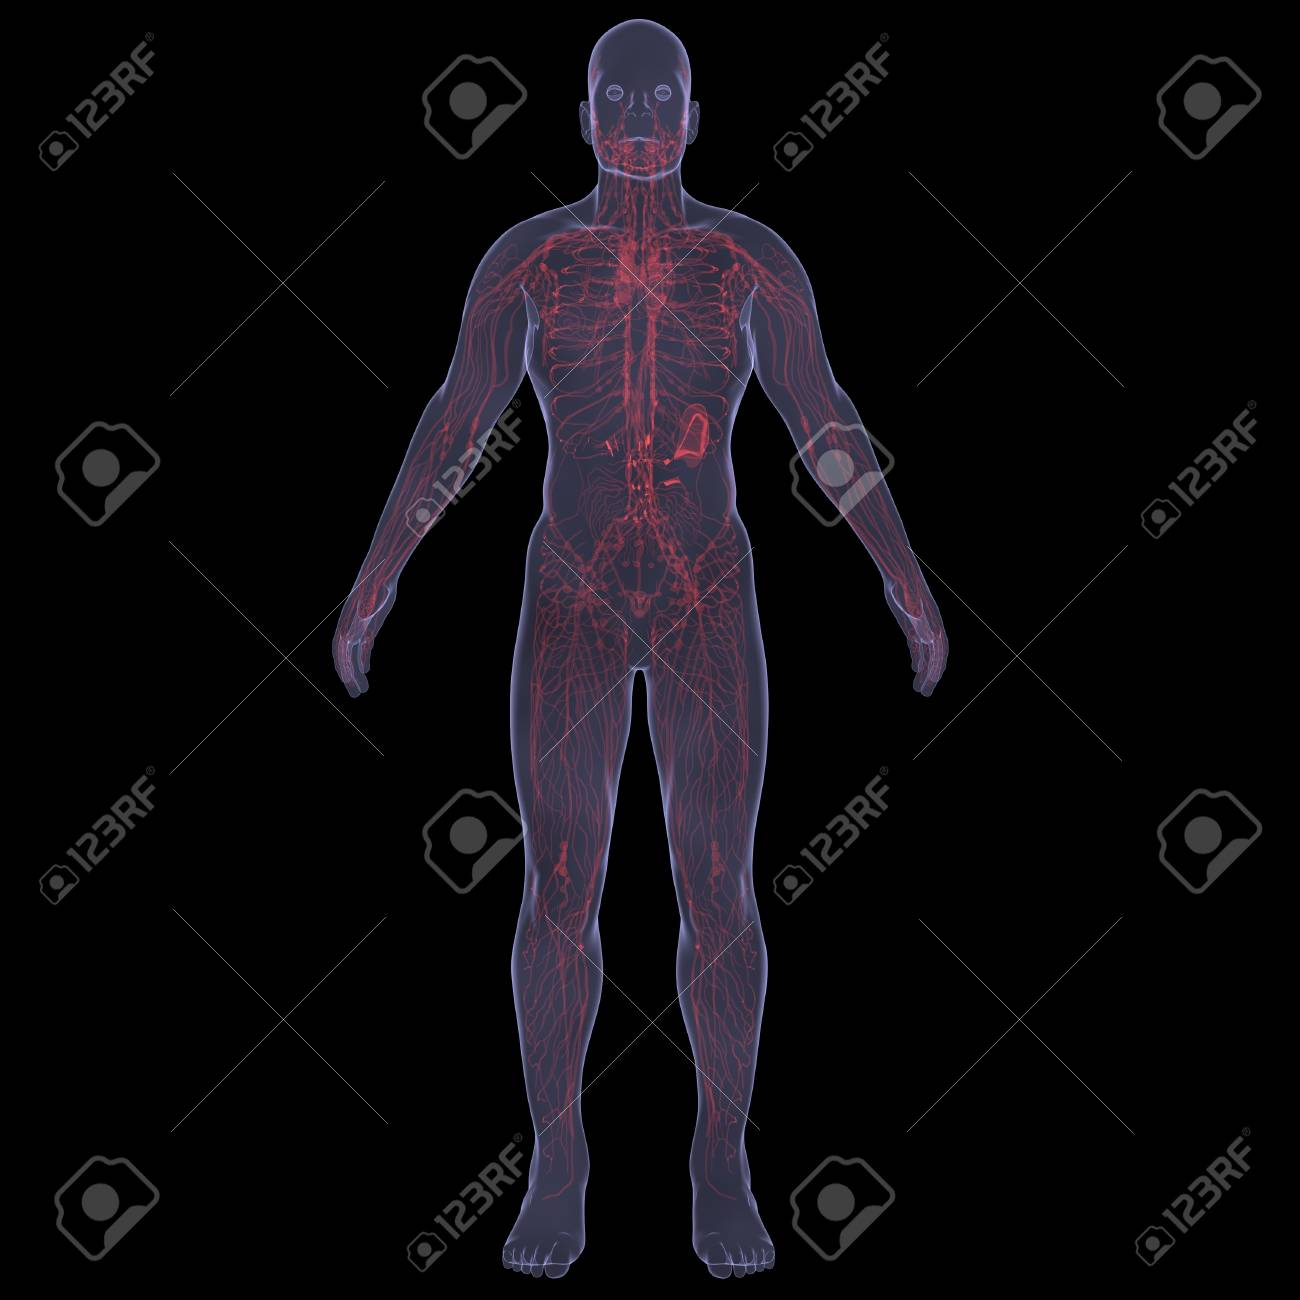 X-Ray picture of a person  Sore digestion  Isolated render on a black background Stock Photo - 19443544